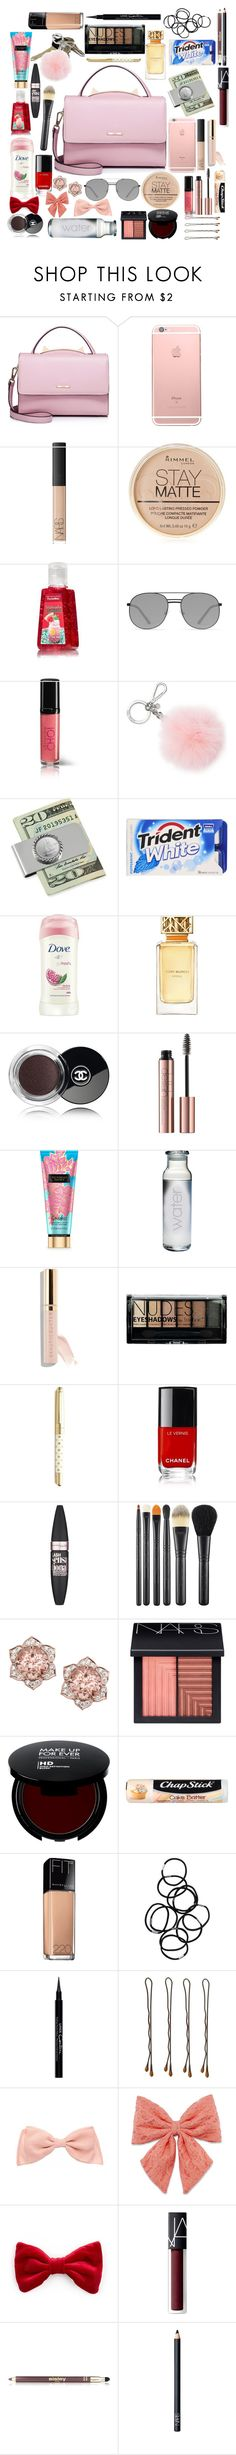 """Pink Necessity"" by rosiecheeksandfreckles ❤ liked on Polyvore featuring WithChic, NARS Cosmetics, Rimmel, Elizabeth and James, Avon, Michael Kors, American Coin Treasures, Dove, Tory Burch and Chanel"